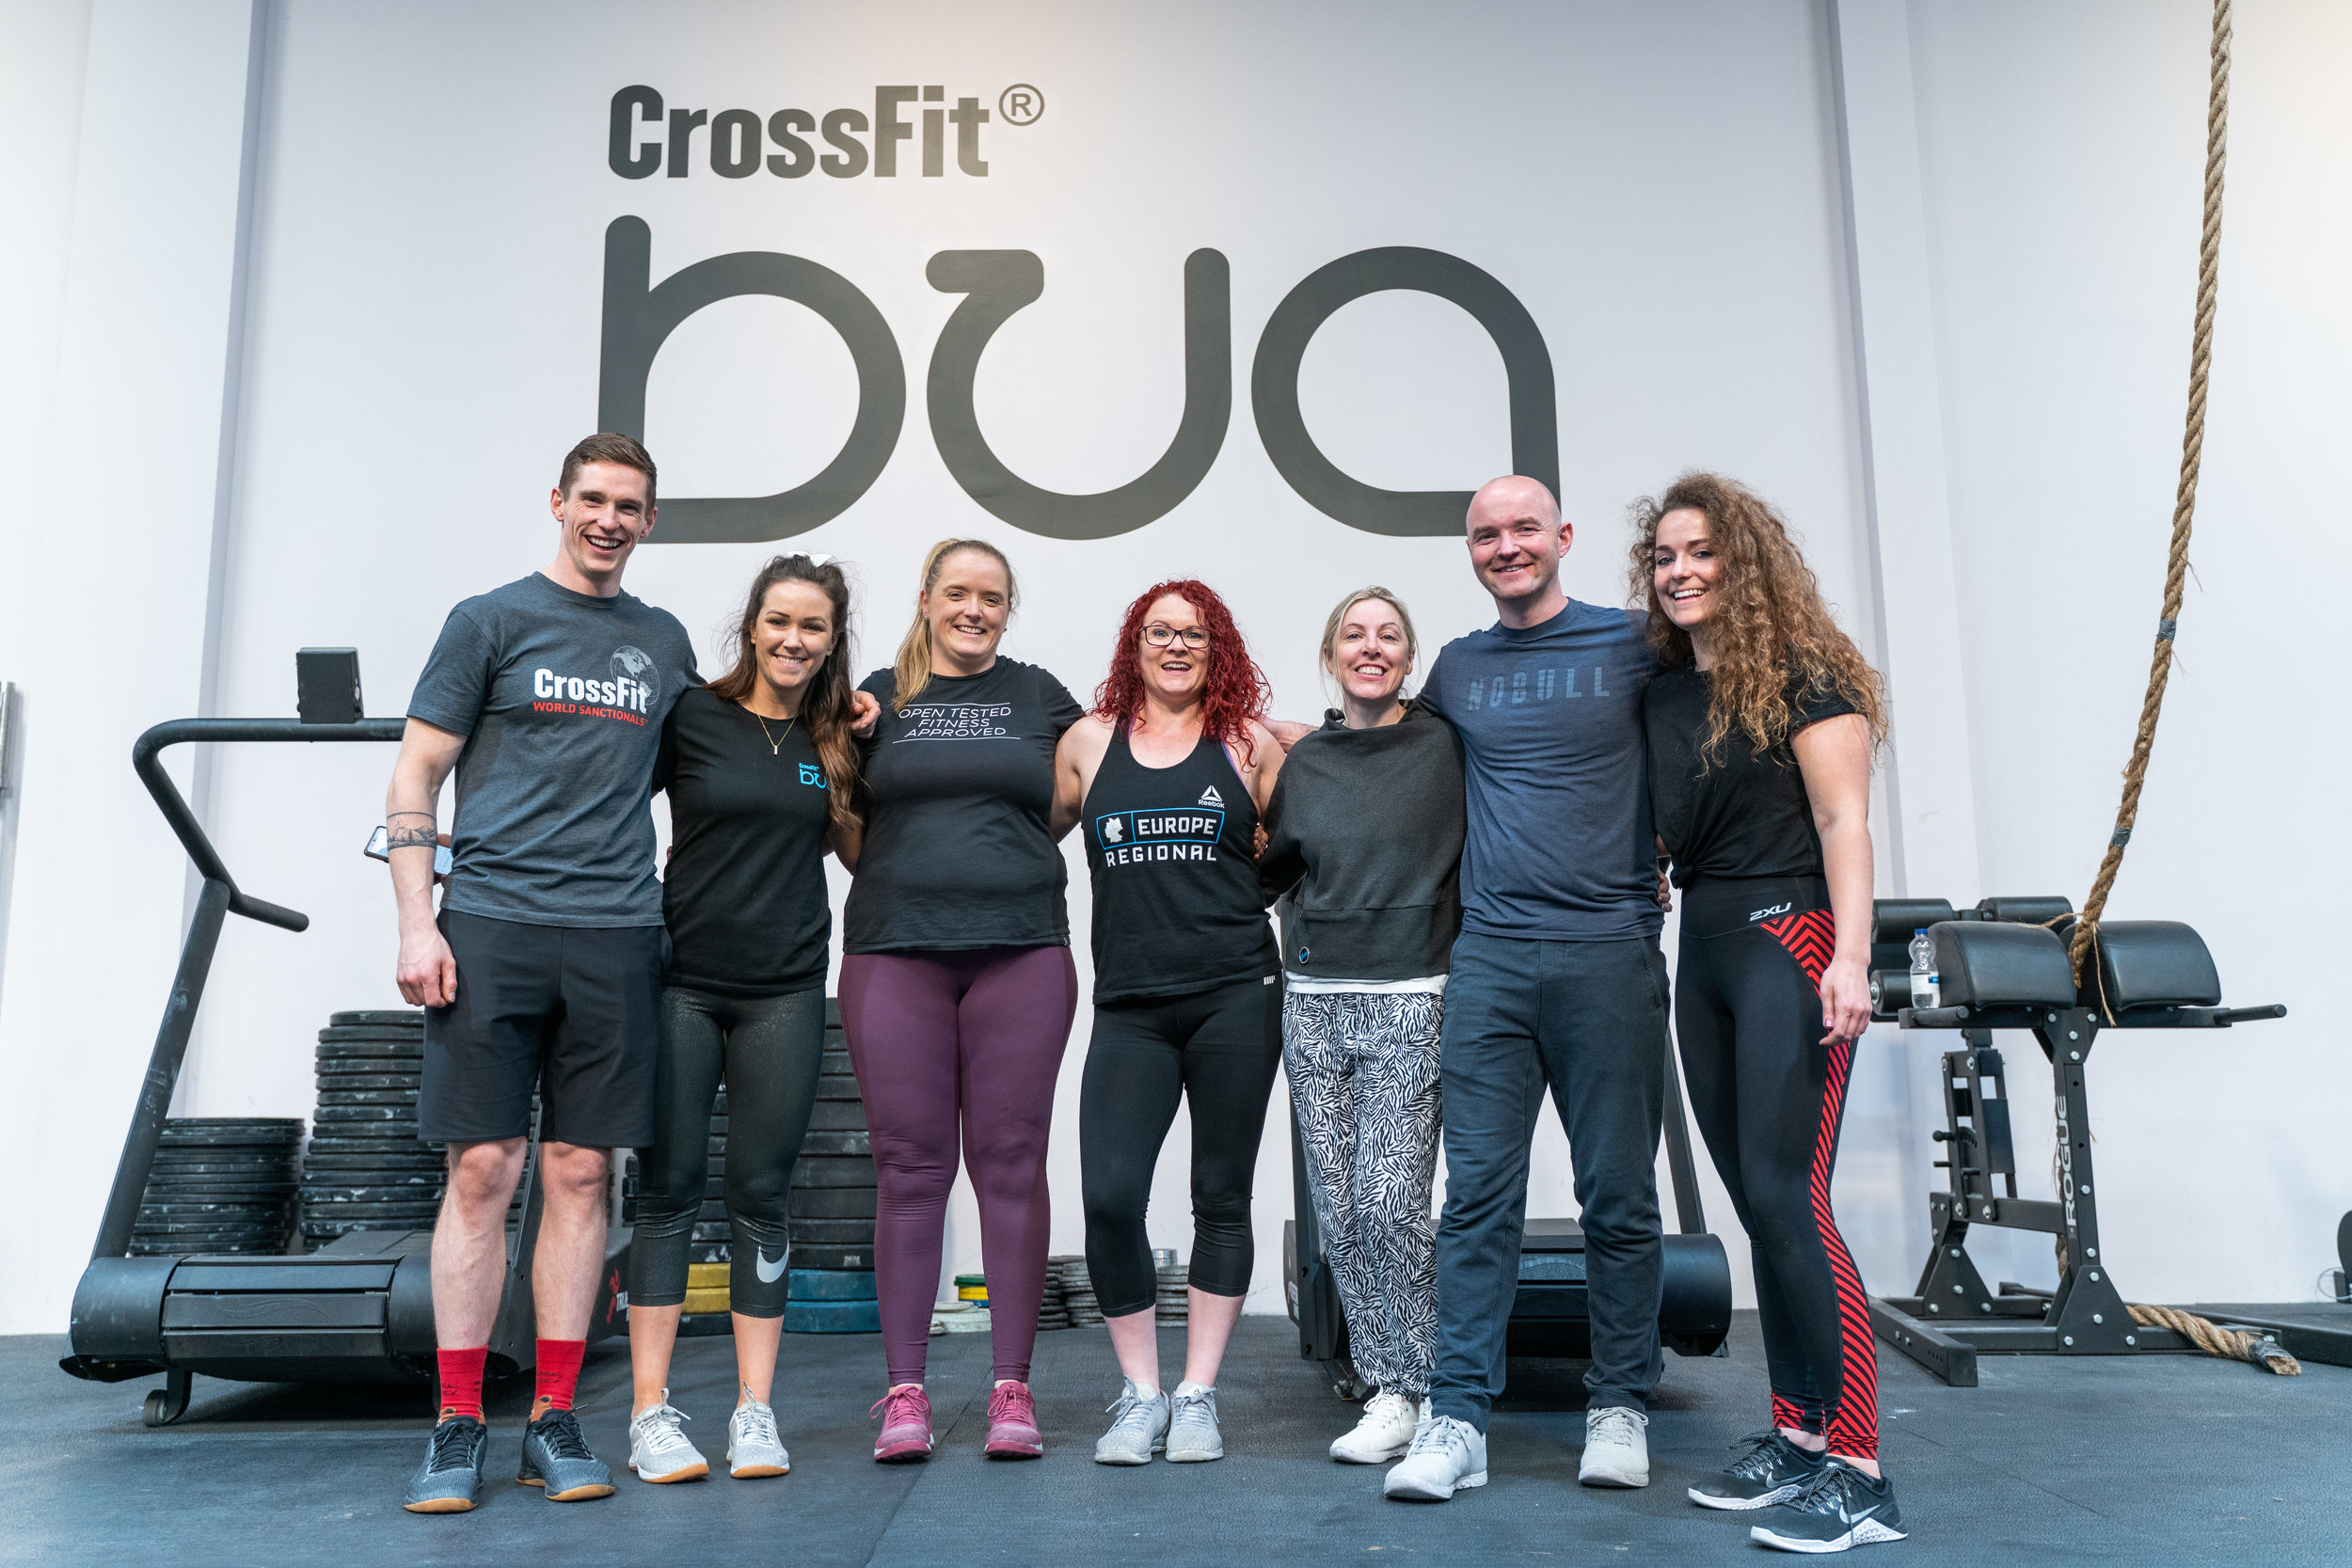 Meet our team… #filthyready   Christopher - Head of Judging & Logistics  SarahAnn - Head of Media  Doreen - Head of Athlete & Volunteer Control  Sharon - Head of Scoring & Technology  Darina - Head of Commercial Strategy  Jamie - Director  Briony - Head of Event Management  Missing - Georgia - Head of Athlete Care     Now bring your team in November, we cant wait to meet you!